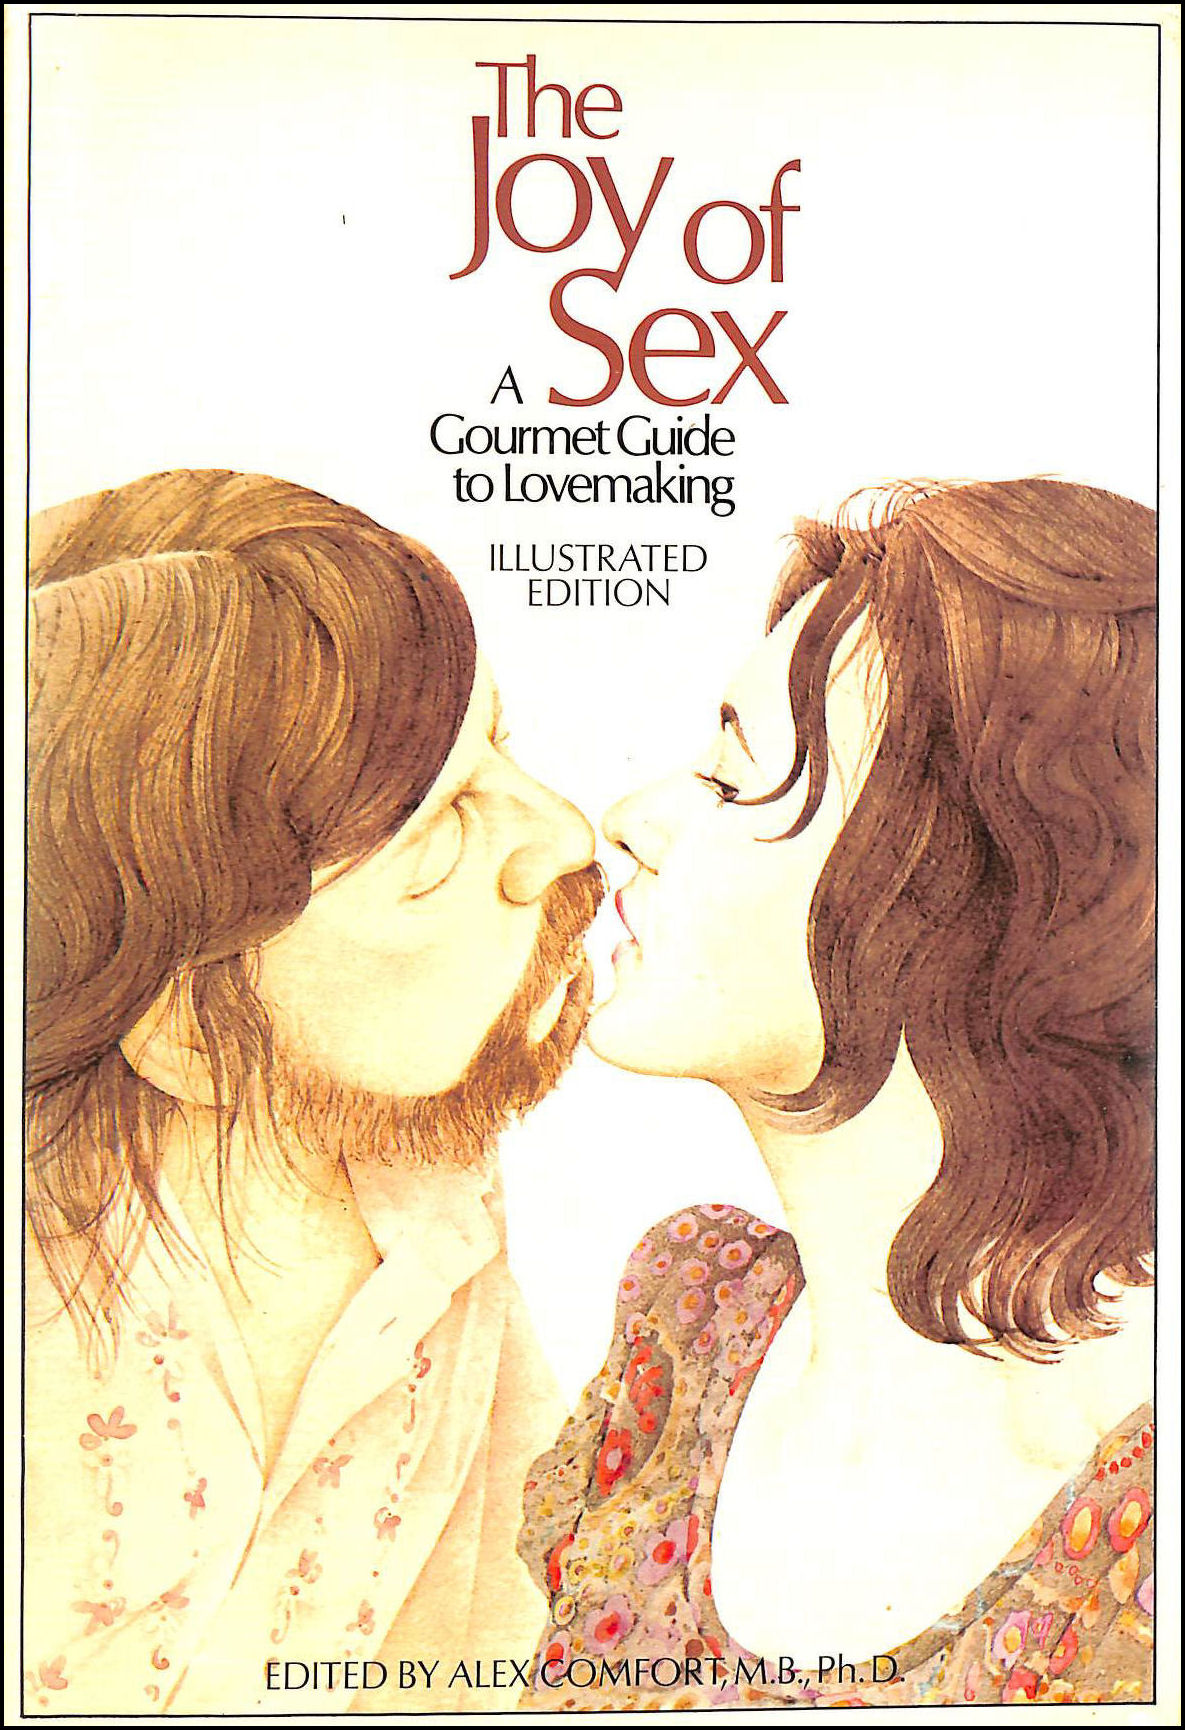 Joy of Sex: Gourmet Guide to Lovemaking, Comfort, Alex